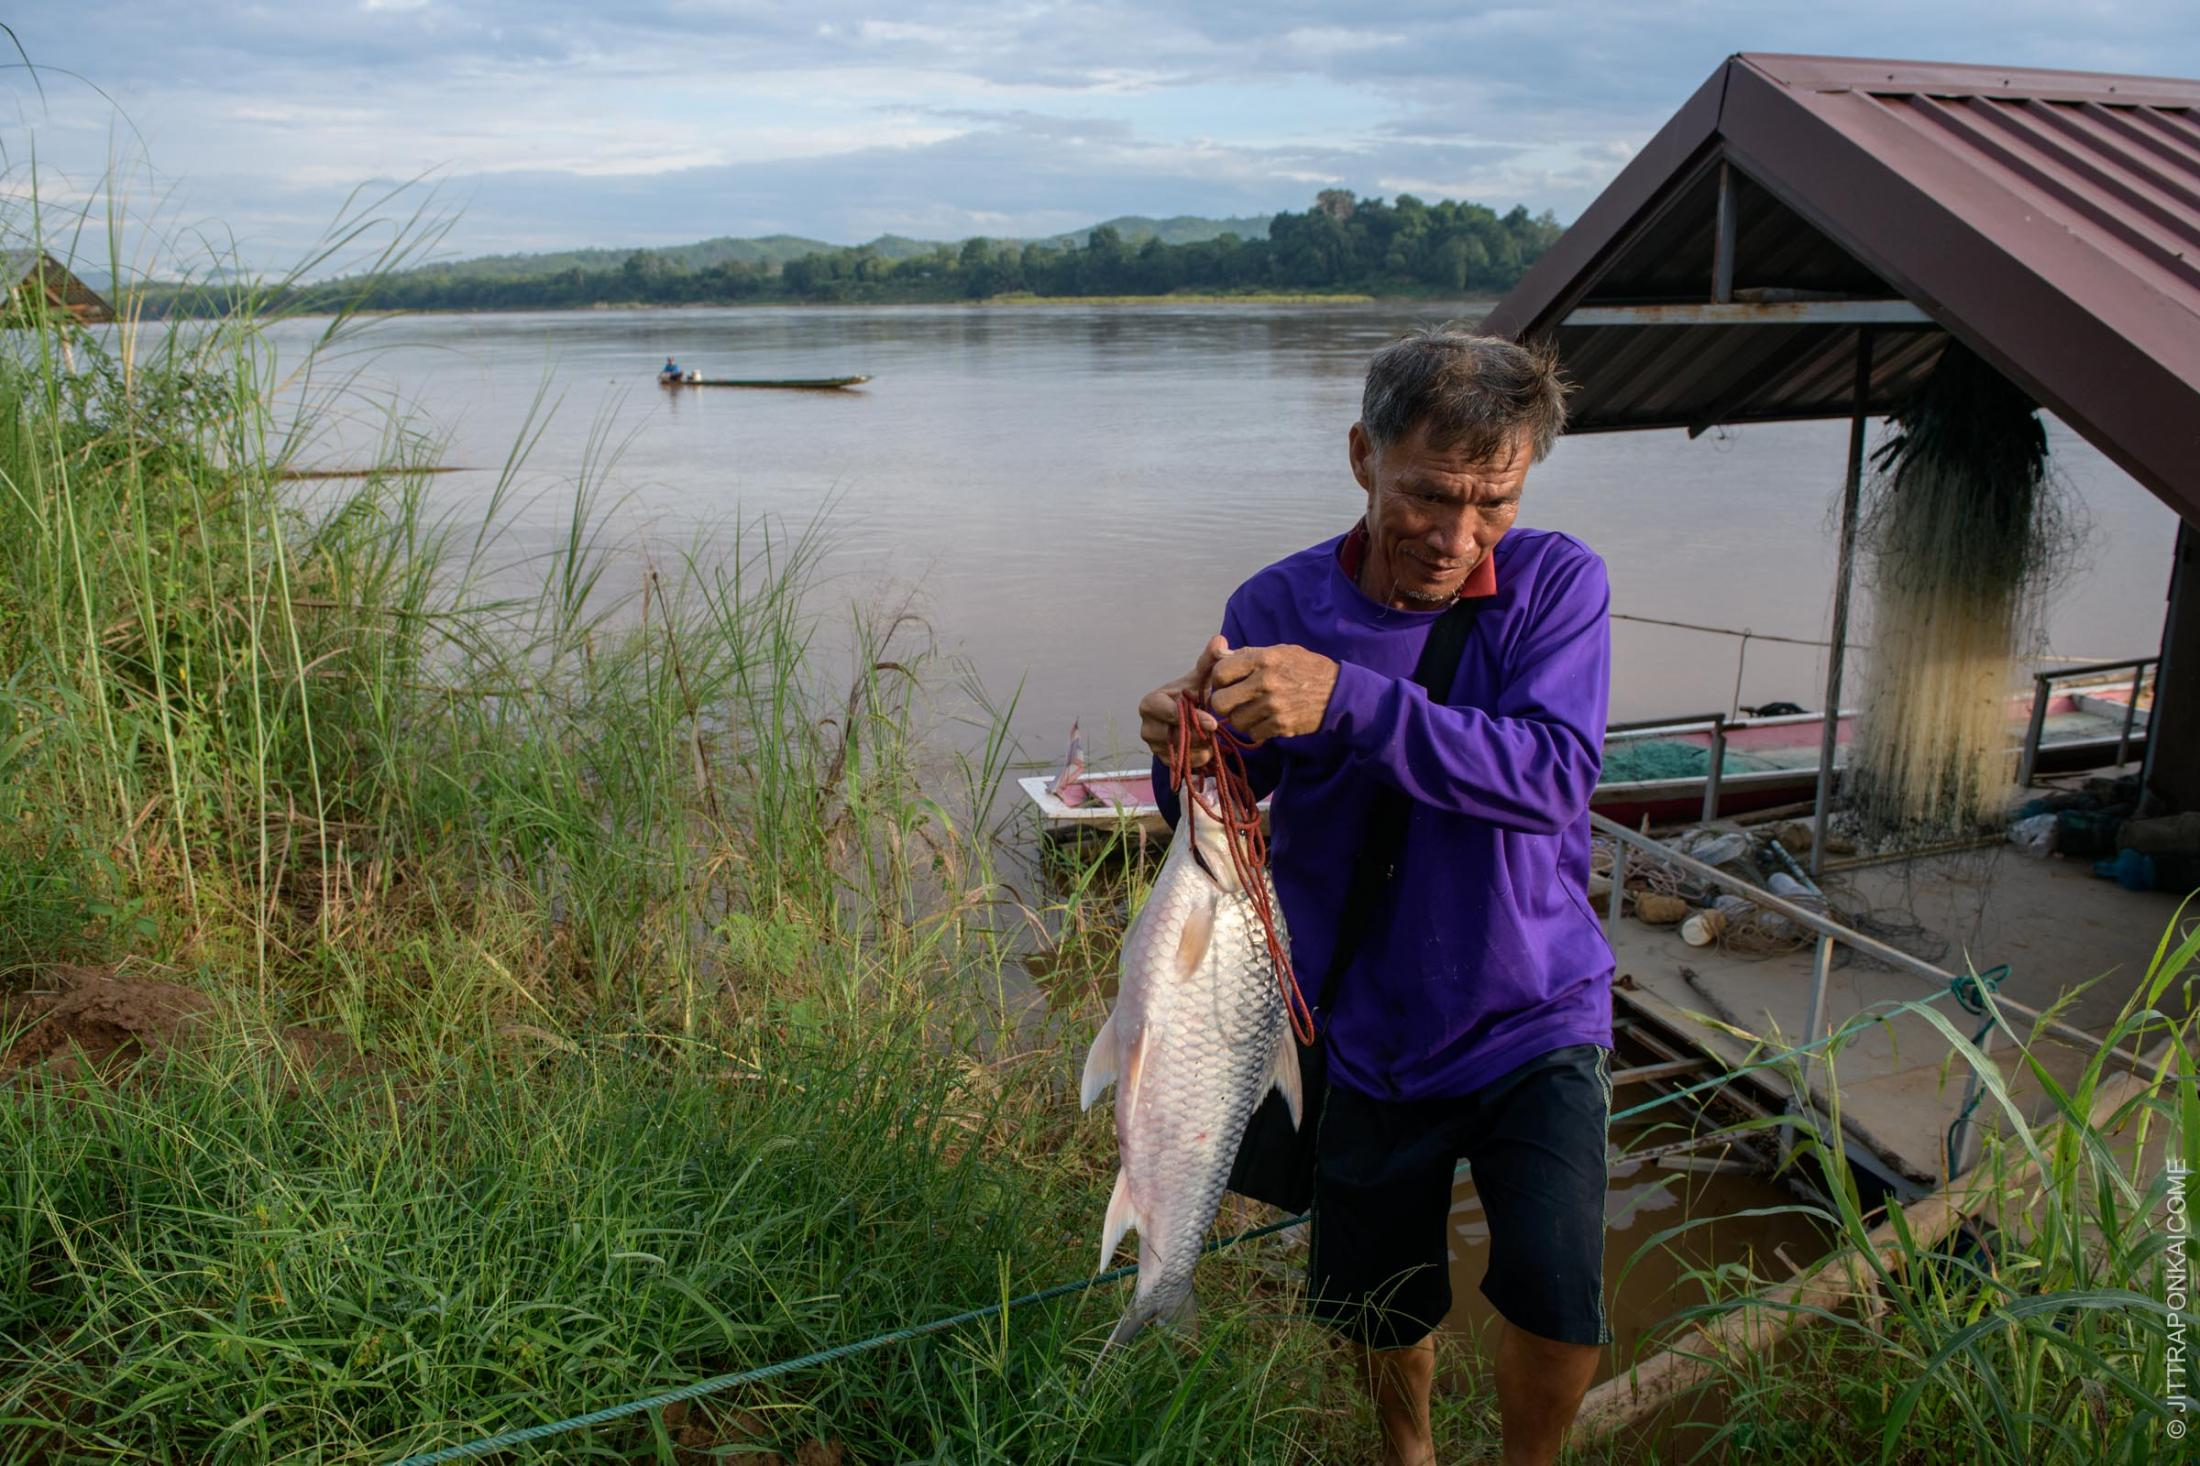 Somporn Kaewmala has caught a common silver barb, weighing 5 kilograms, which is a rare sight these days. As a 62 years old fisherman who resettled from Laos since he was 10, he has witnessed the economic downfall of the fisheries on the Mekong River firsthand. After the Xayaburi Dam was built, water levels dropped. The fish can't reproduce, and people can't farm along the river banks. This negatively affects incomes, so people have to find work as a construction worker or other manual labor. If they build the Sanakham Dam, there will be no fish left for the next generation. In Loei, Thailand – August 2020.